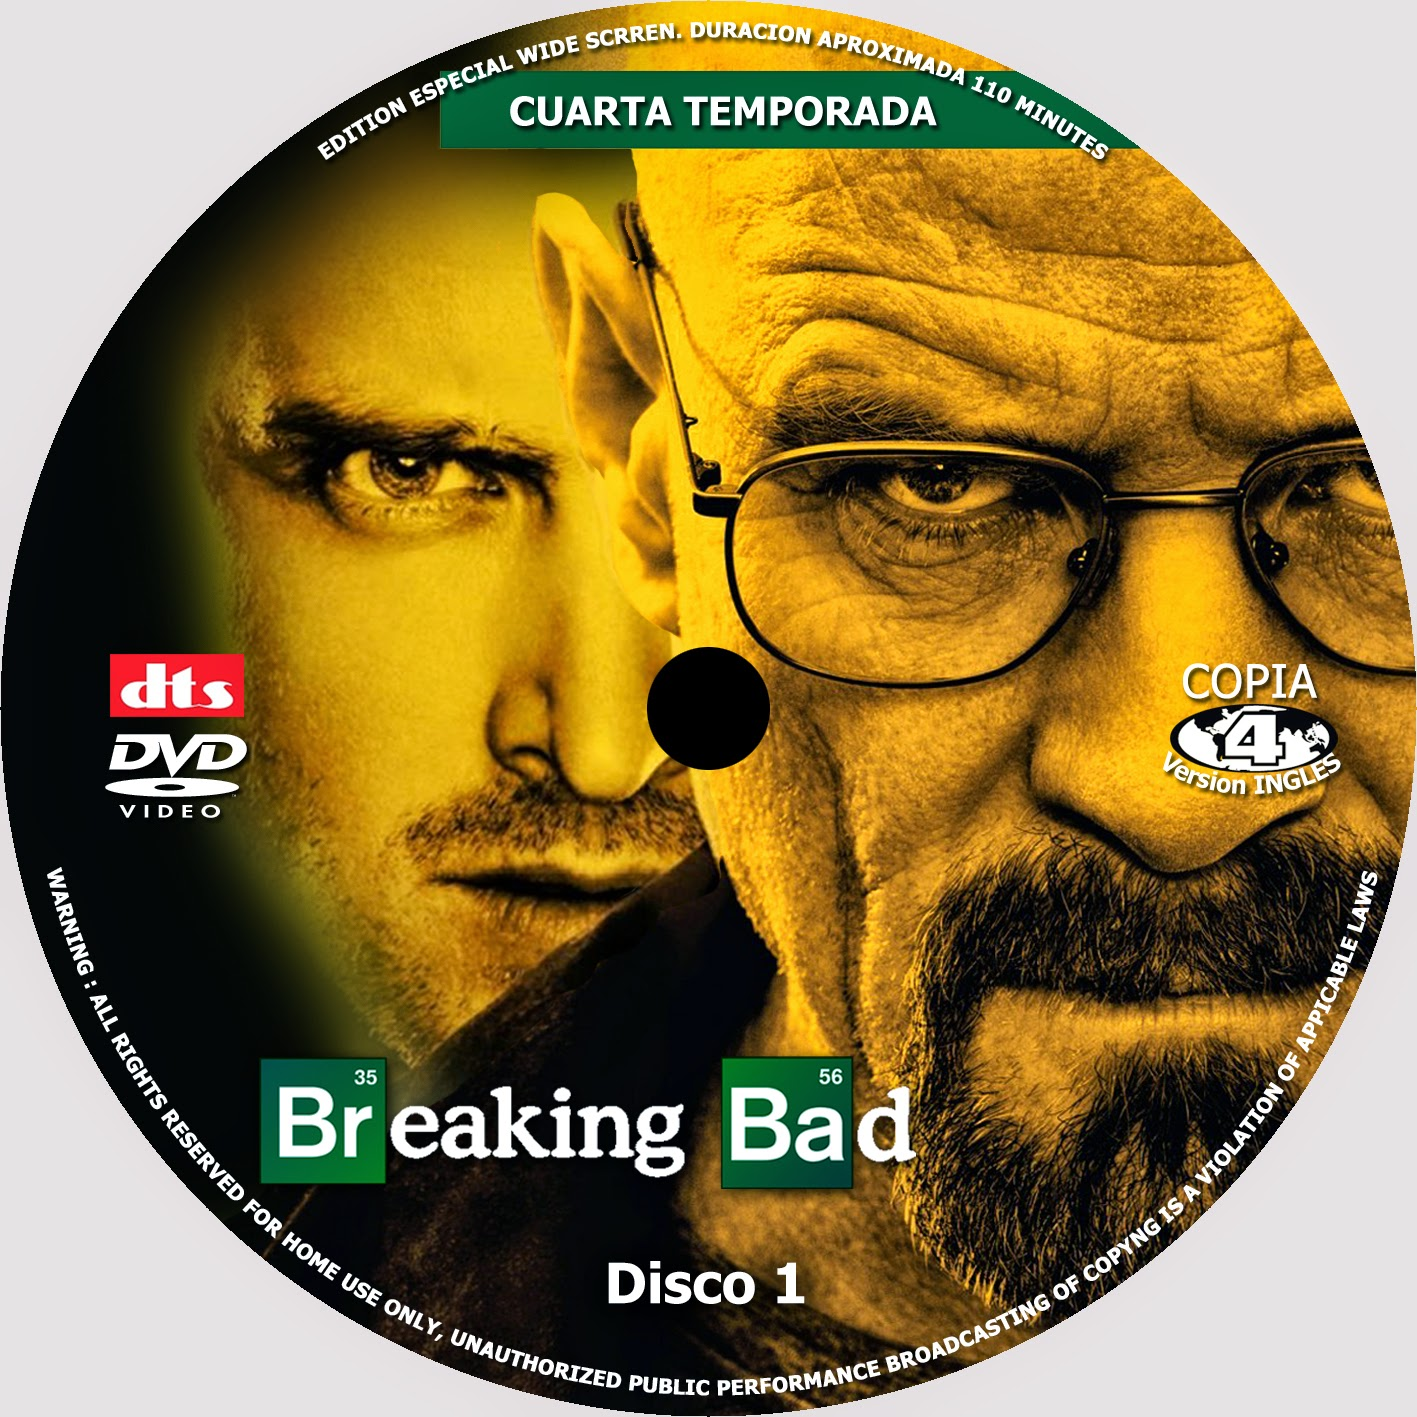 COVERCARATULAS DE DVD - CD COVERCREATORS: BREAKING BAD \